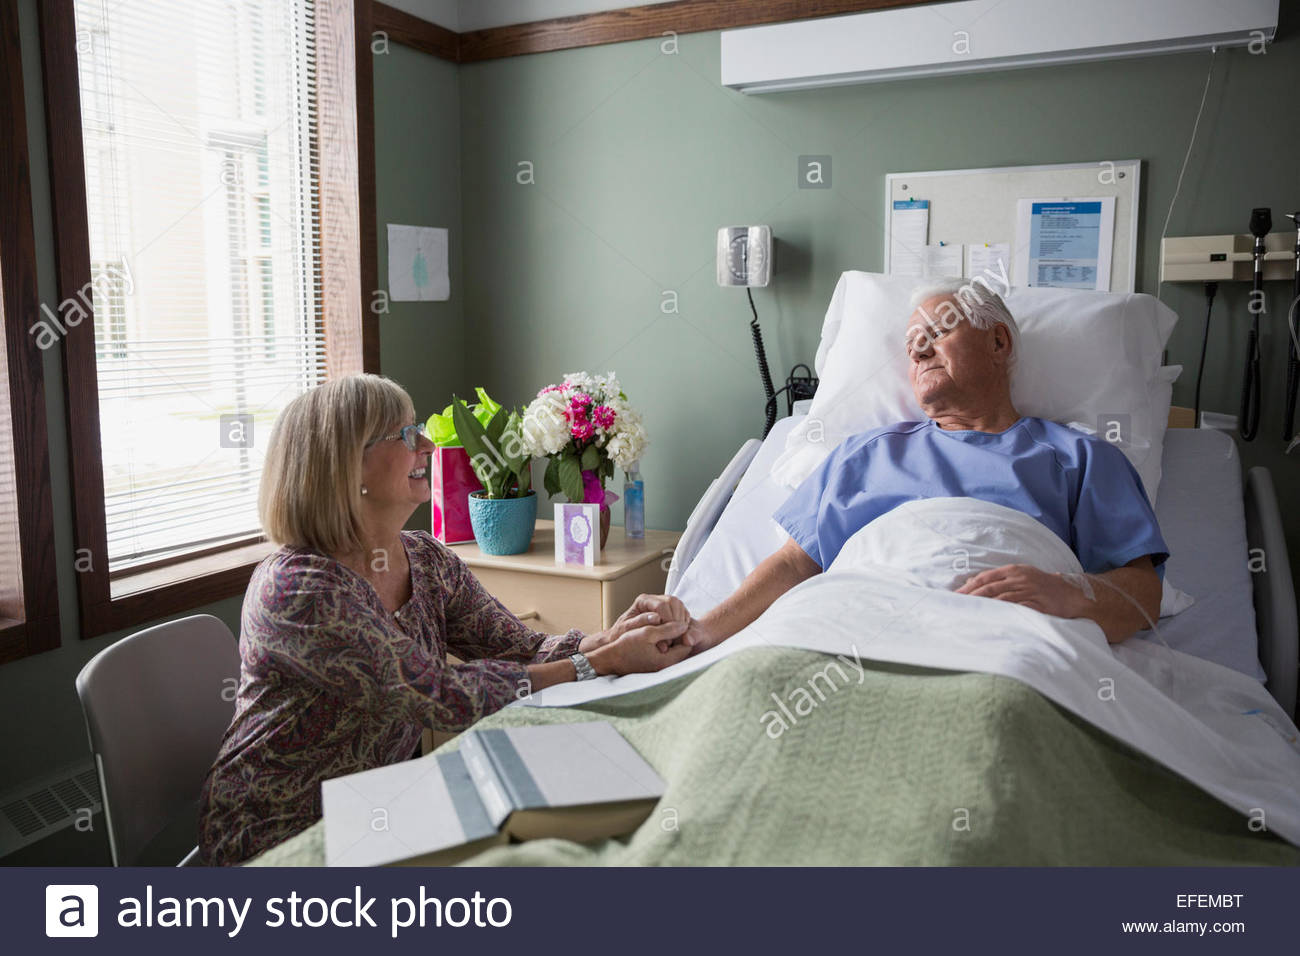 Wife holding husbands hand in hospital room - Stock Image